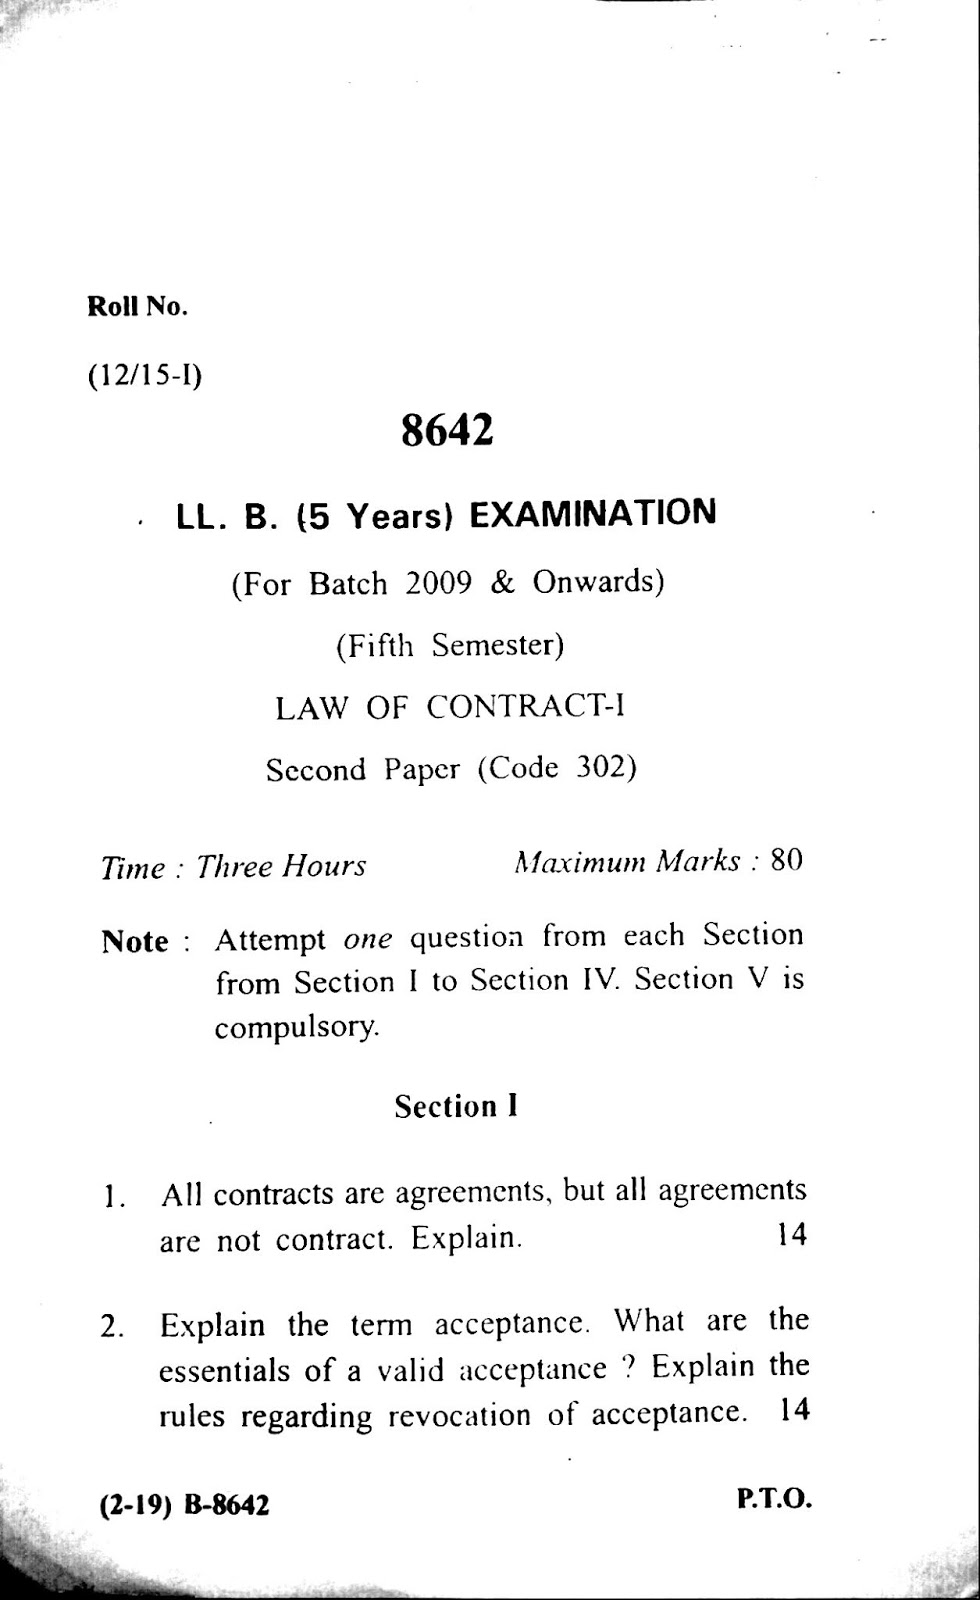 Previous/Last years question paper of Law of Contract for LL